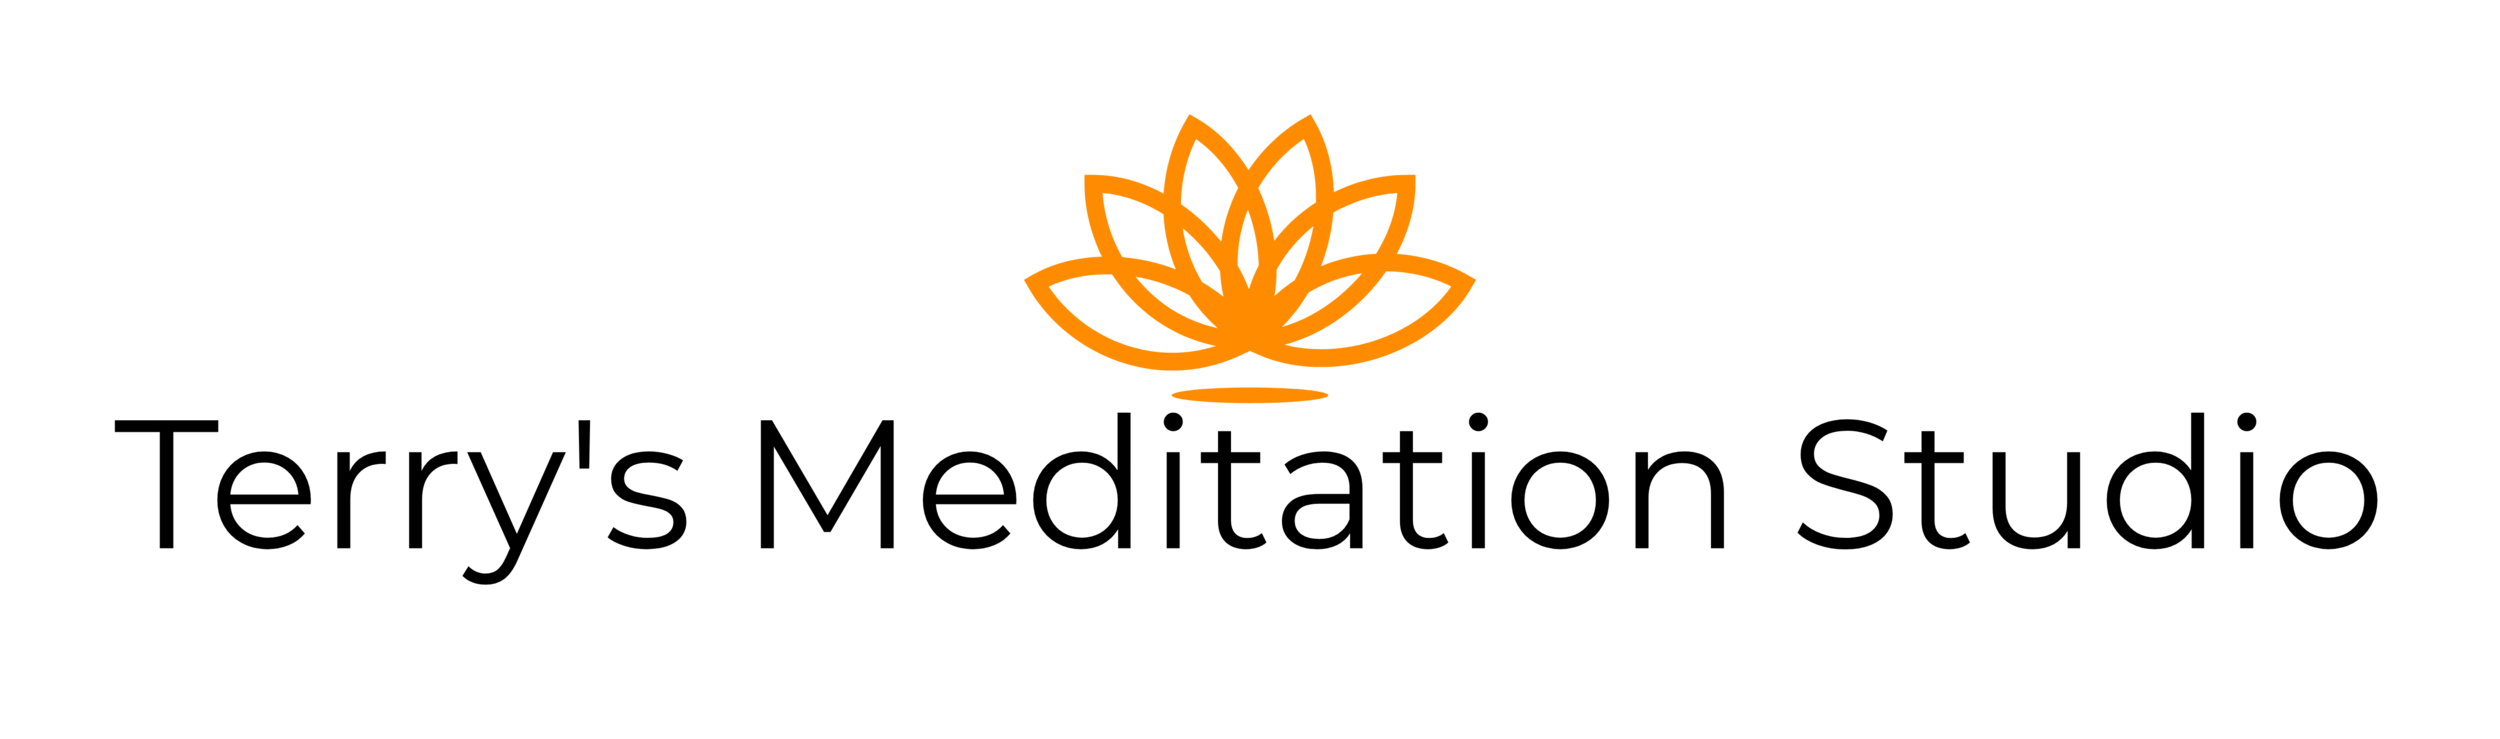 Terry's Meditation Studio-logo.png